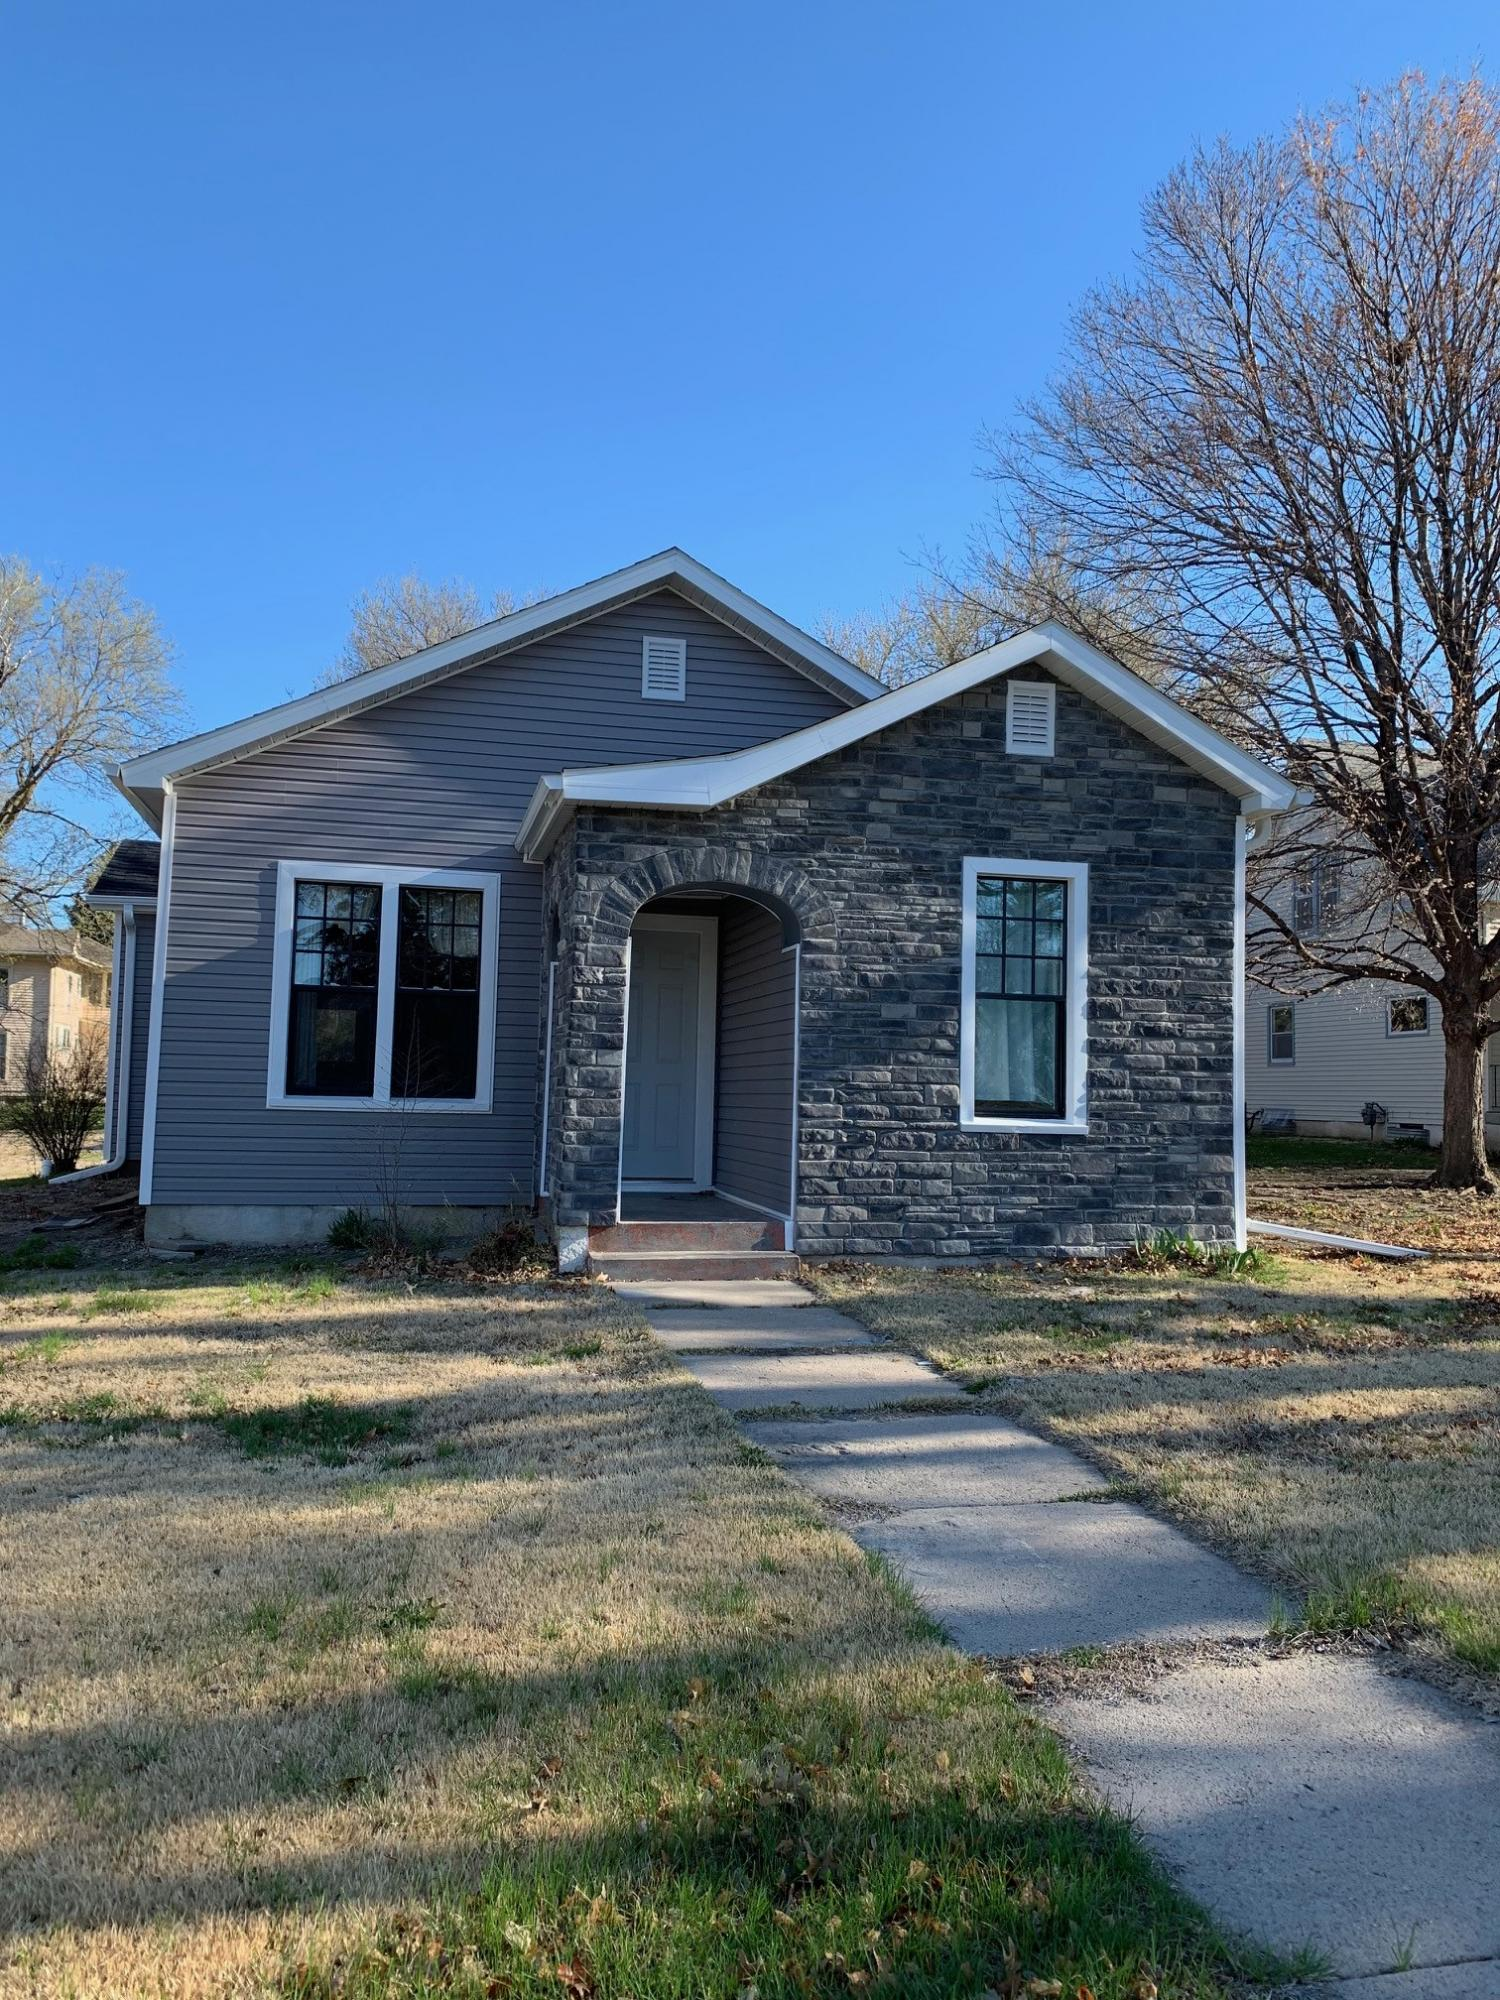 503 E 4th St Green Realty Amp Auction York Ne Real